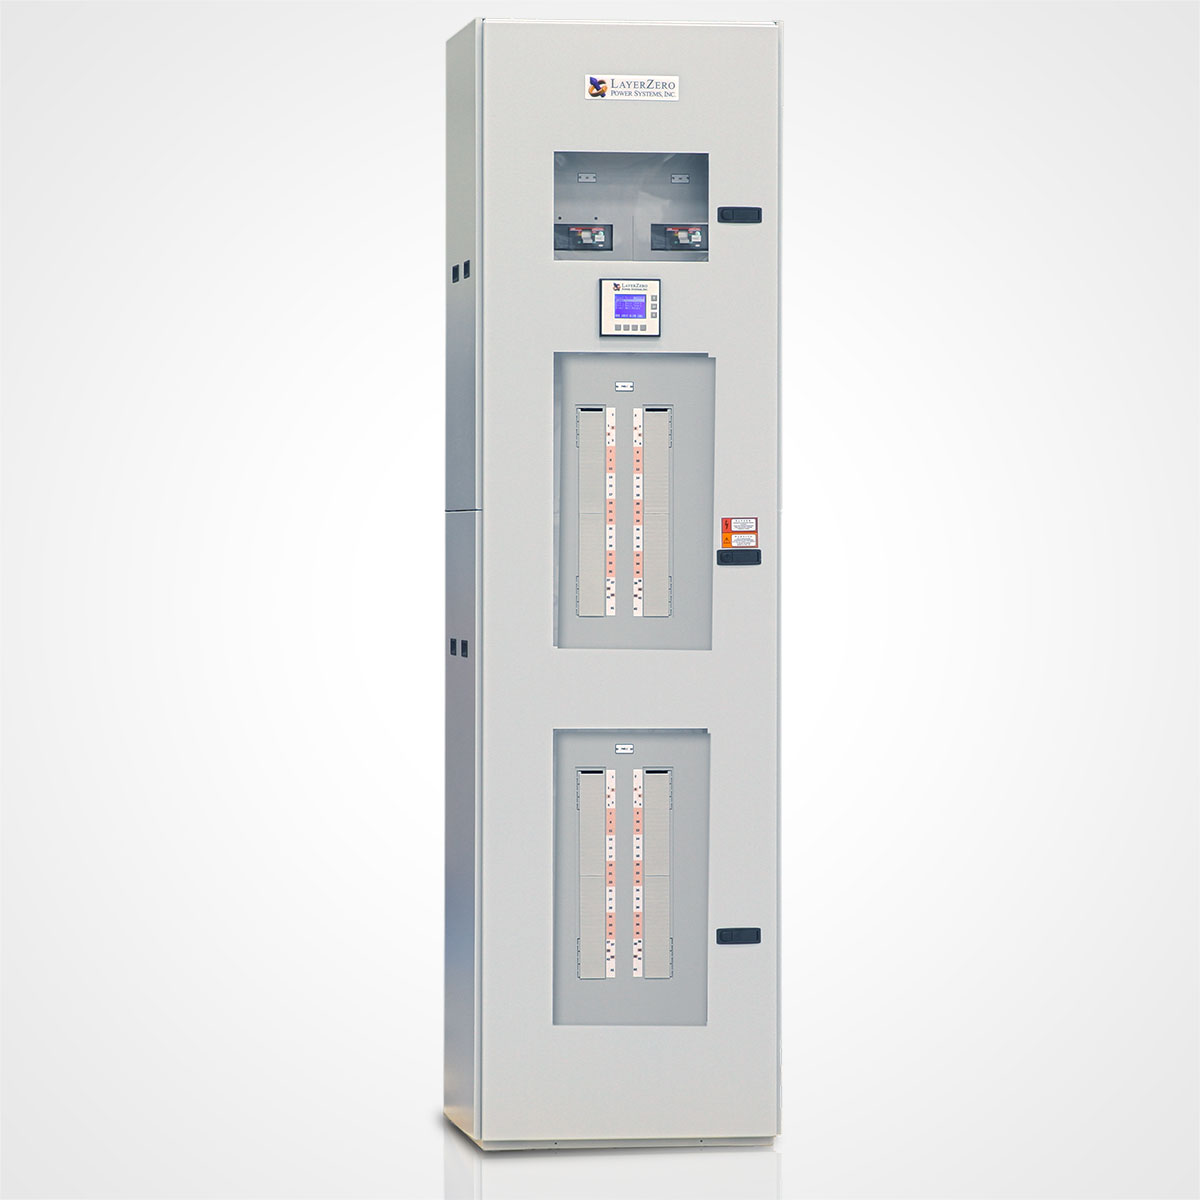 The LayerZero Series 70: eRPP Remote Power Panel with Monitoring.